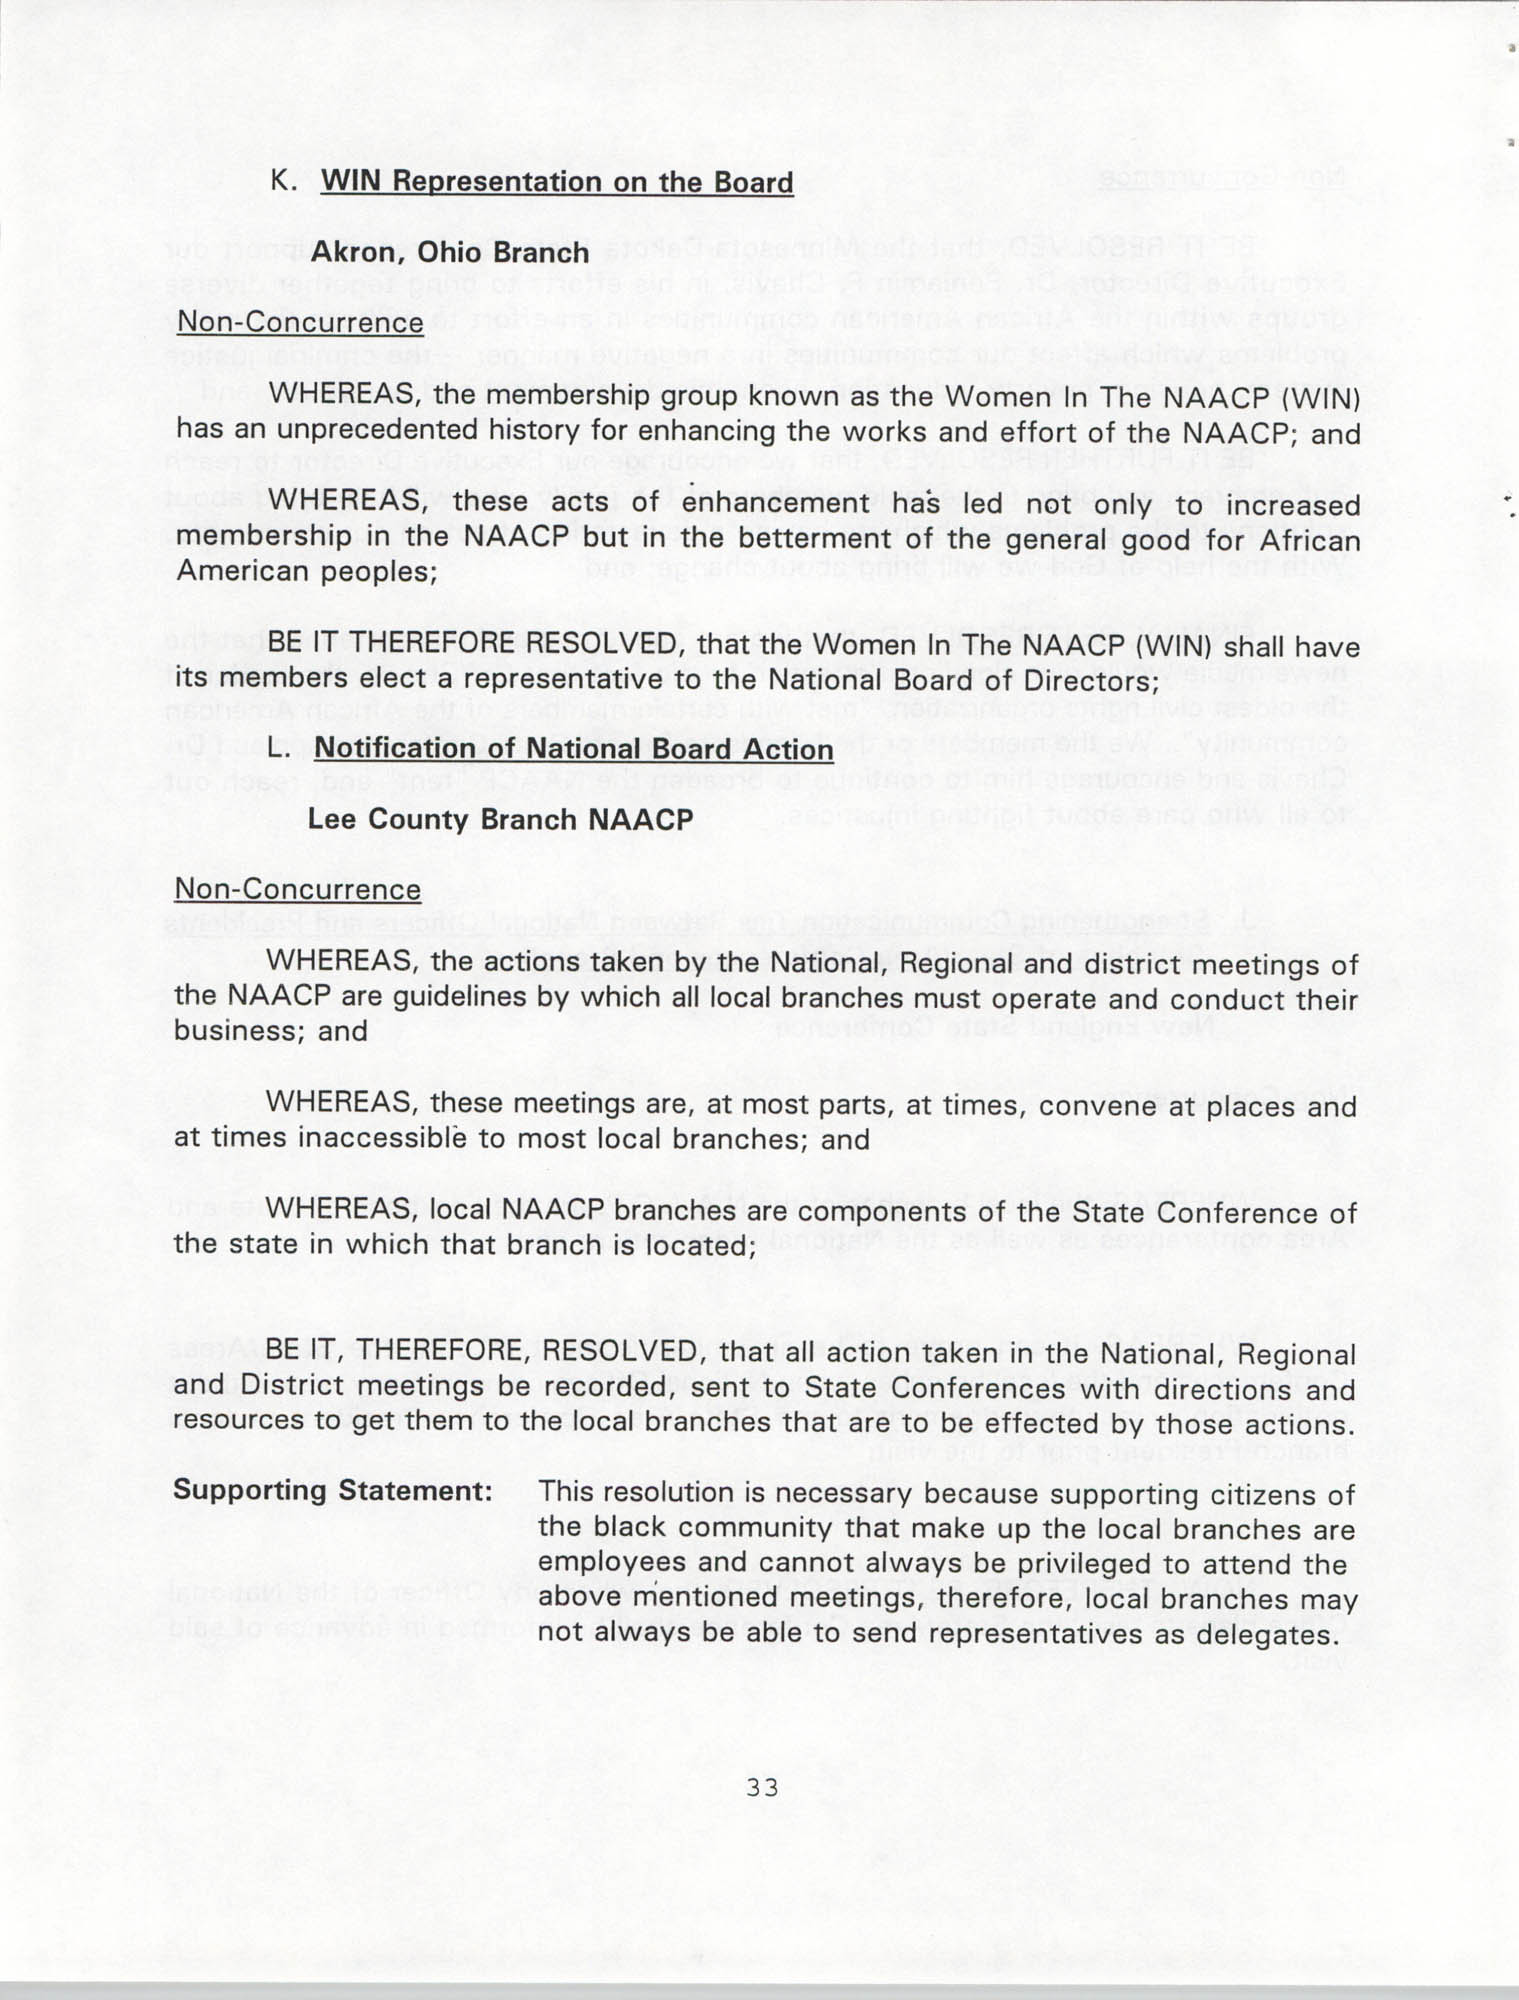 Resolutions Submitted Under Article X, Section 2 of the Constitution of the NAACP, 1994, Page 33